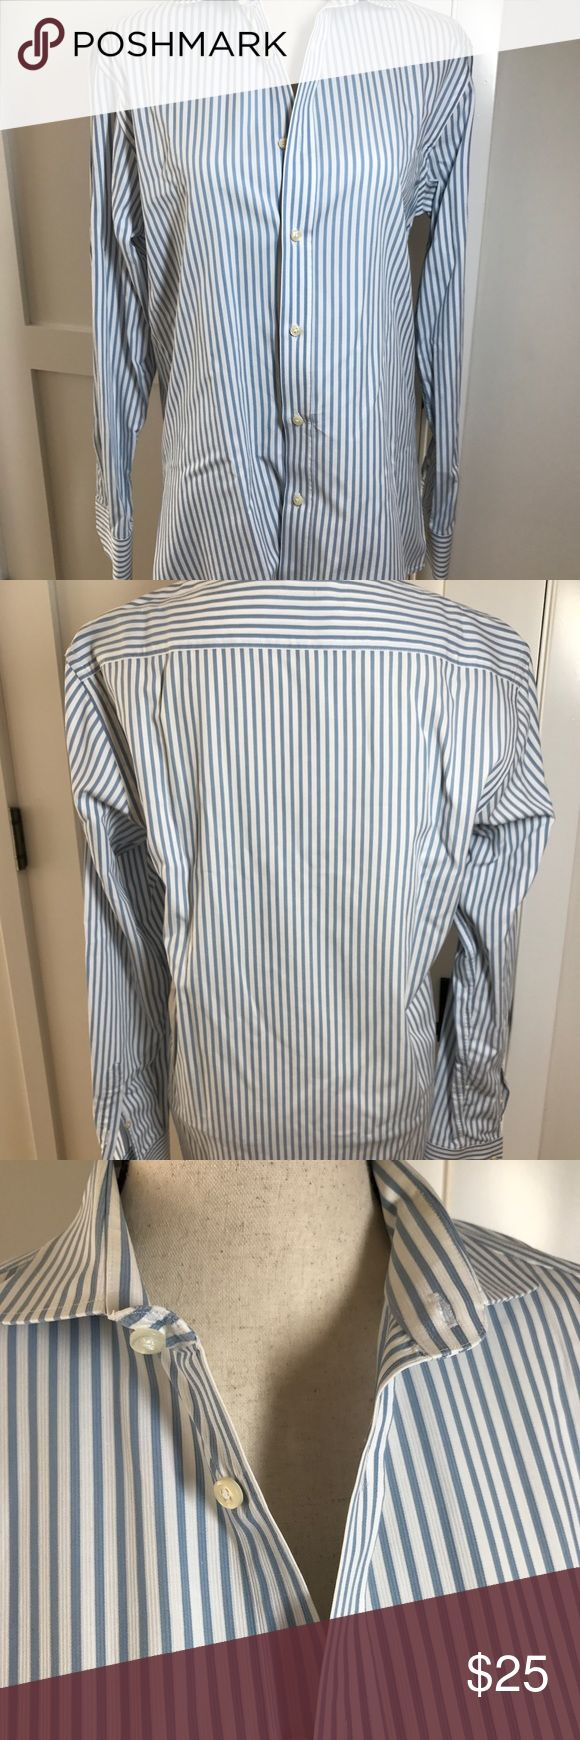 Bloomingdales men's slim fit dress shirt in 16L Bloomingdales men's blue/white striped slim fit dress shirt size 16L. 100% cotton. Gently used but in excellent condition. Crisp and clean and always in style. Looks great with a suit or even jeans. Bloomingdale's Shirts Dress Shirts